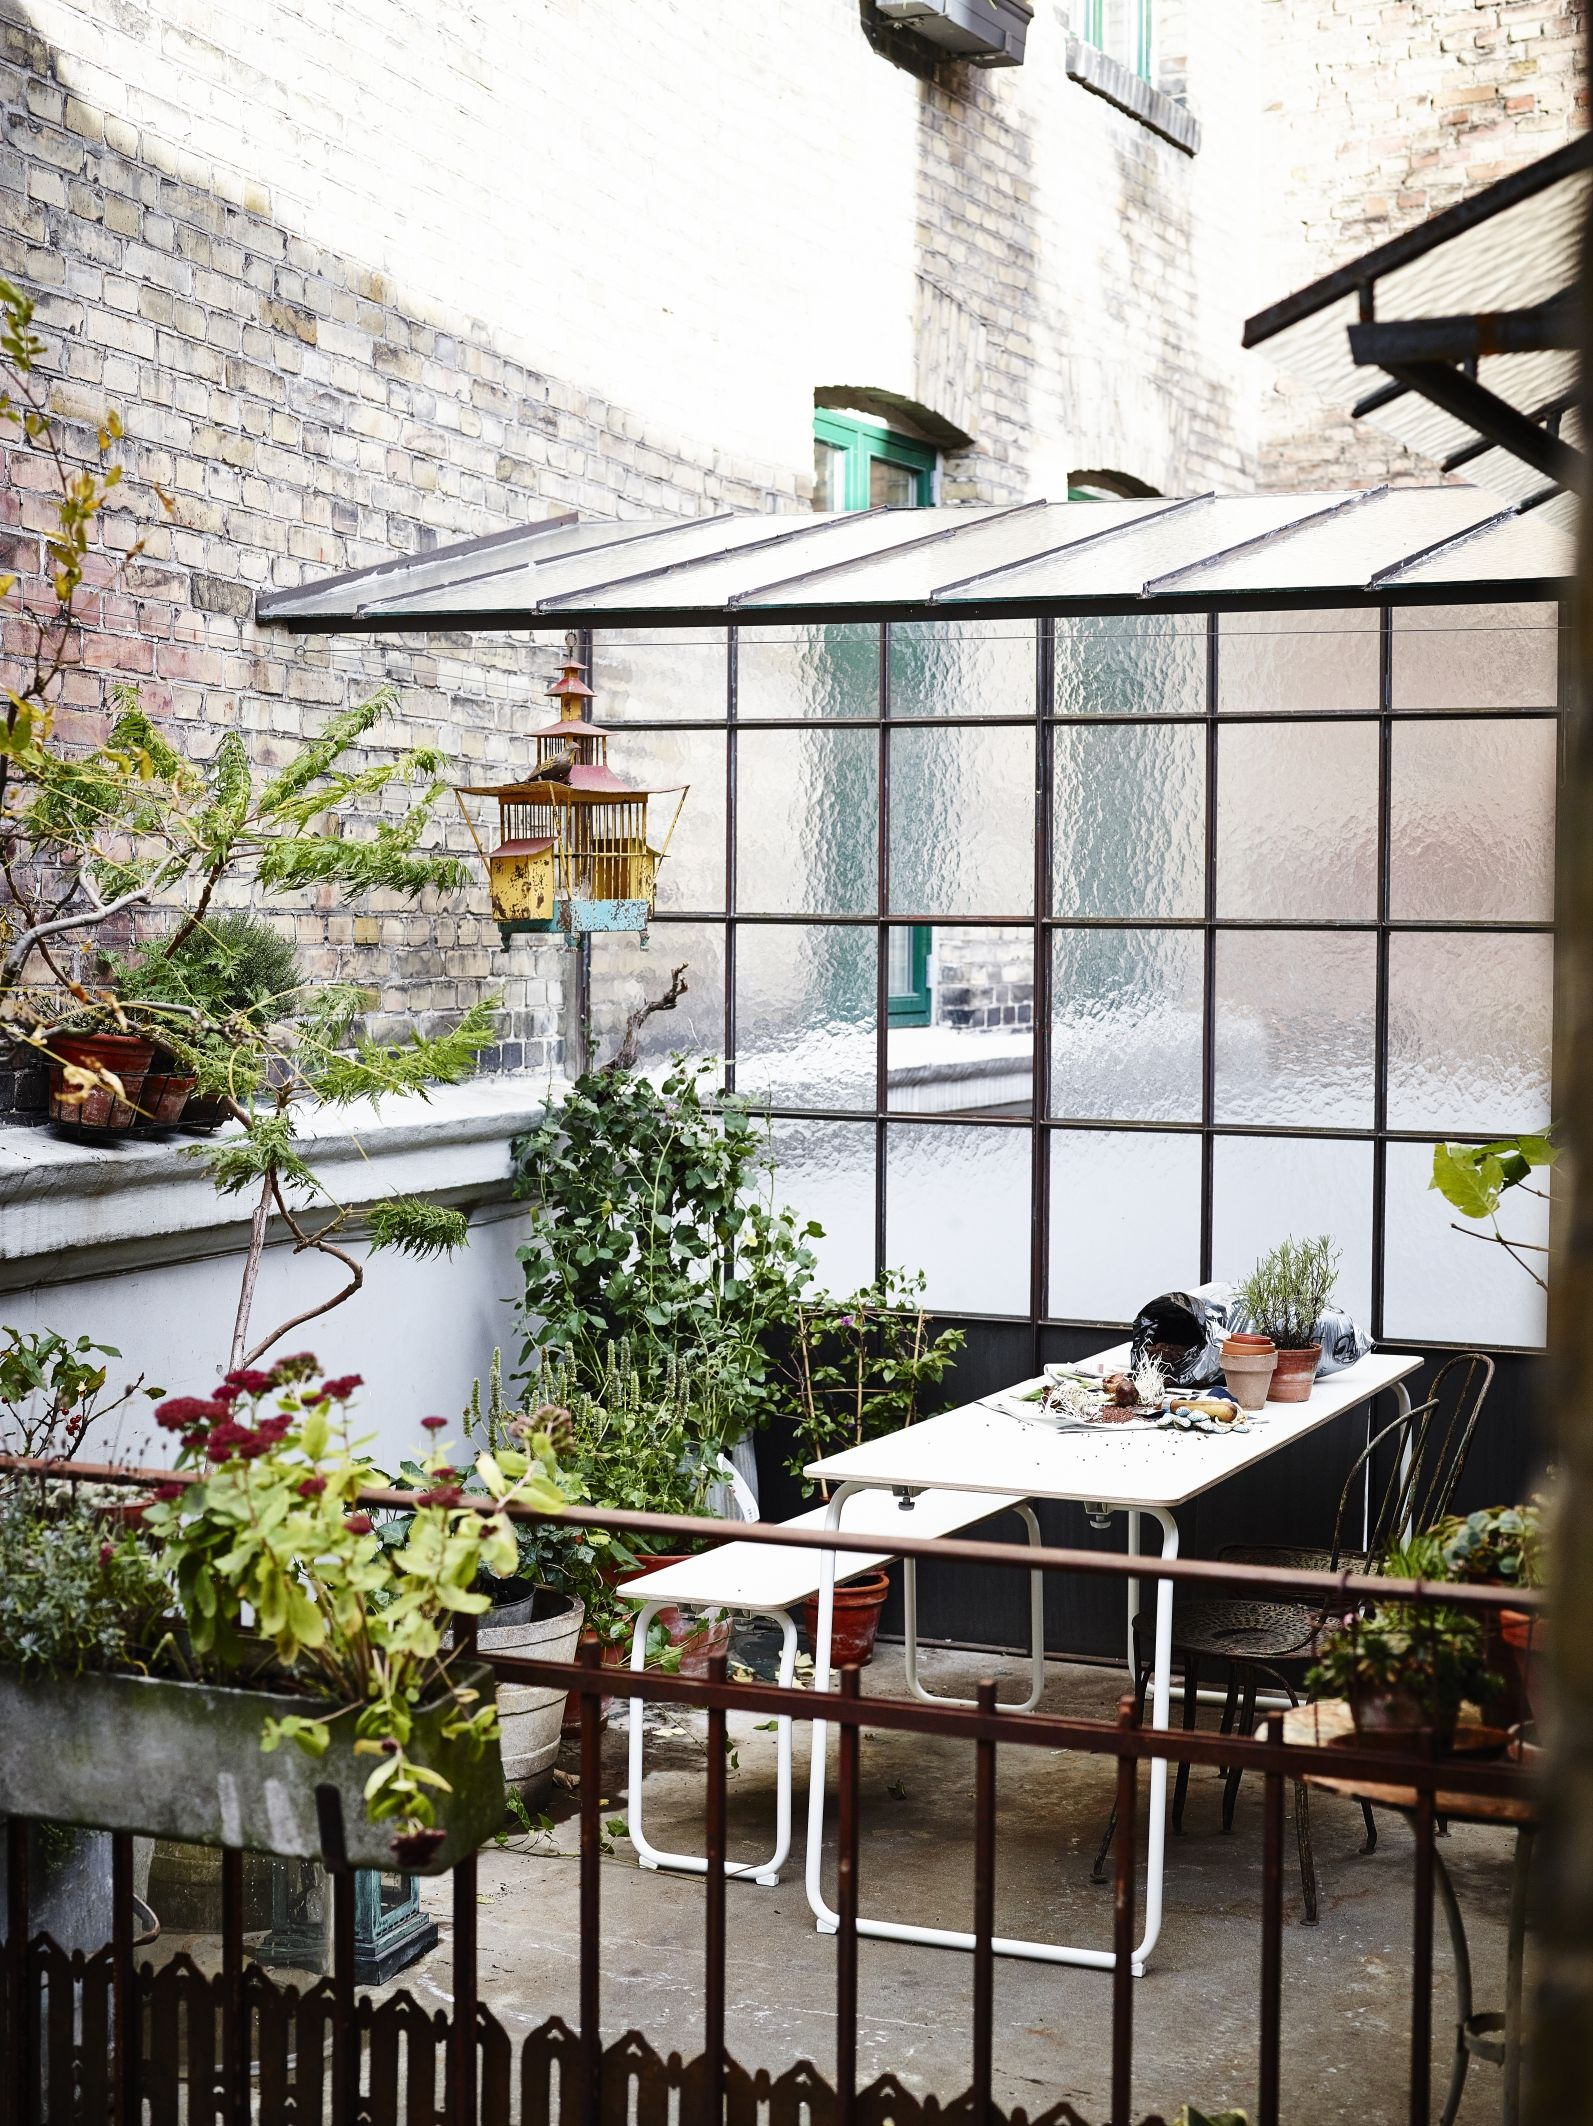 IKEA PS 2014 AMBIANCE | Ideal spaces | Pinterest | Terrazas, Patios ...